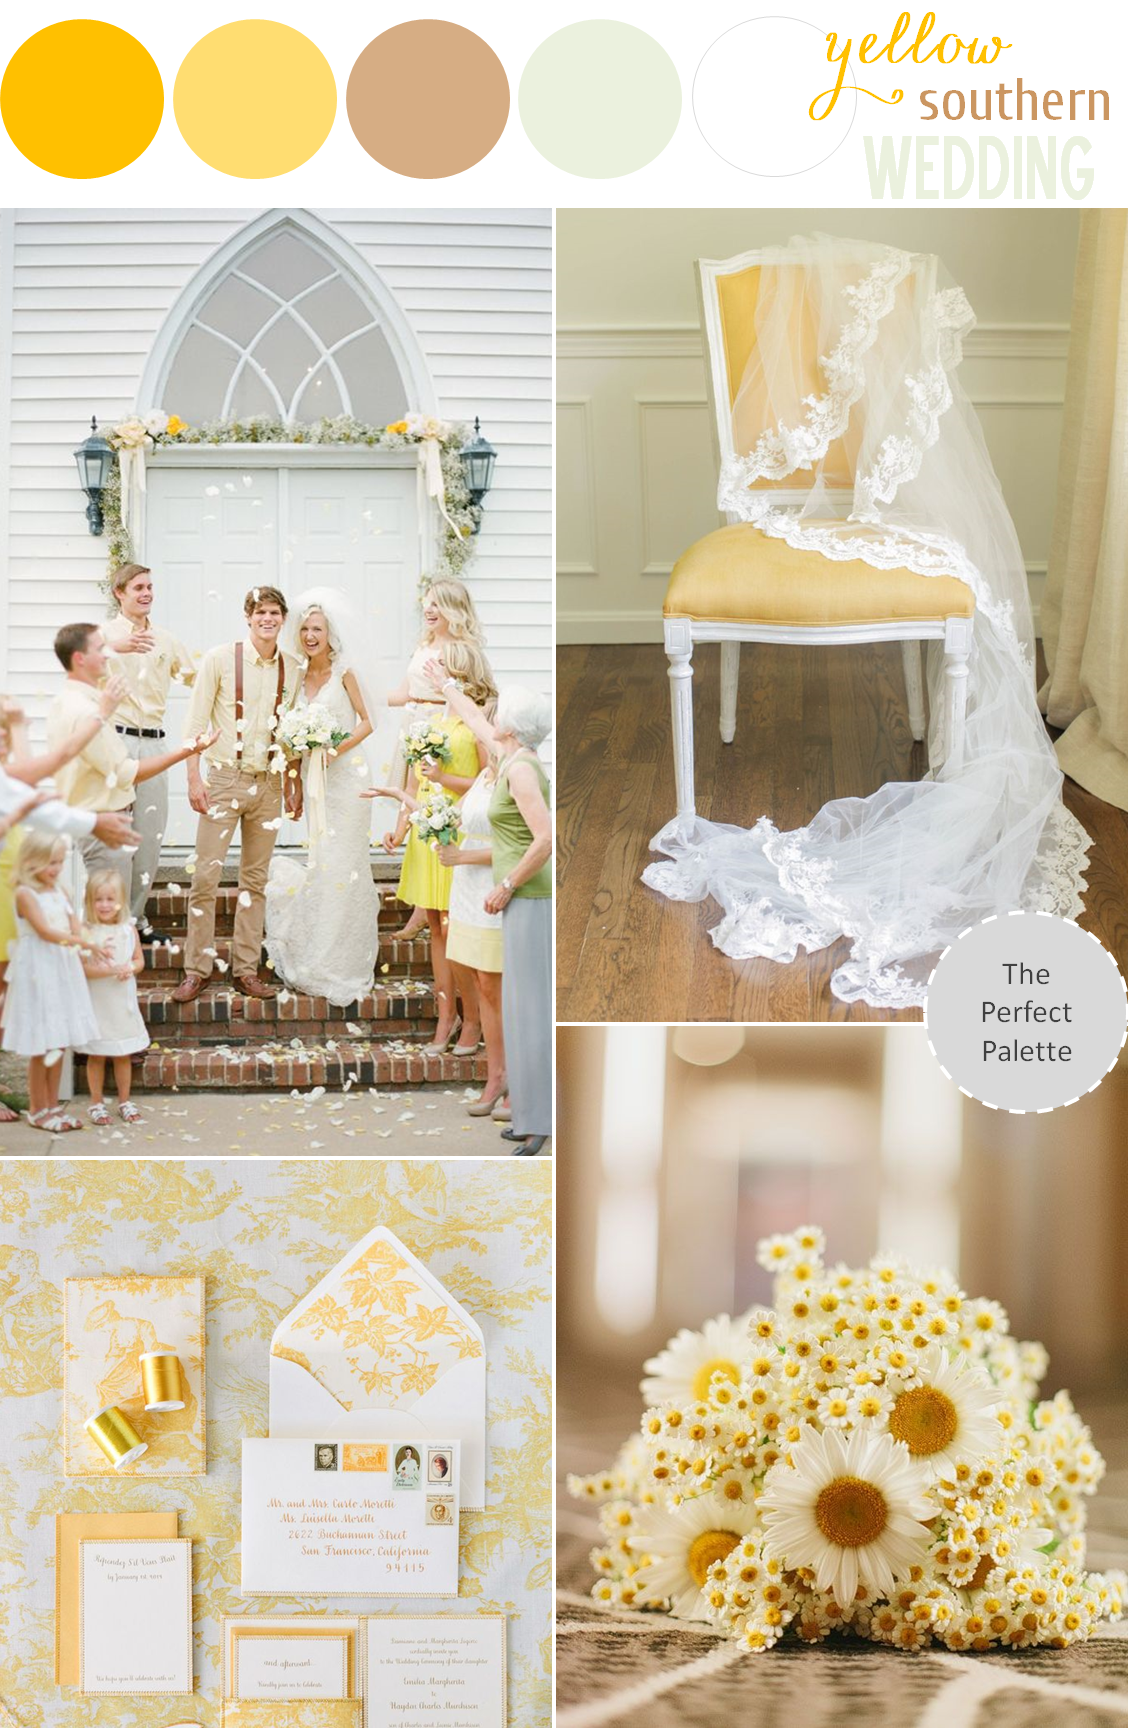 Sunny Southern Wedding: Yellow Styling Ideas | Southern weddings ...